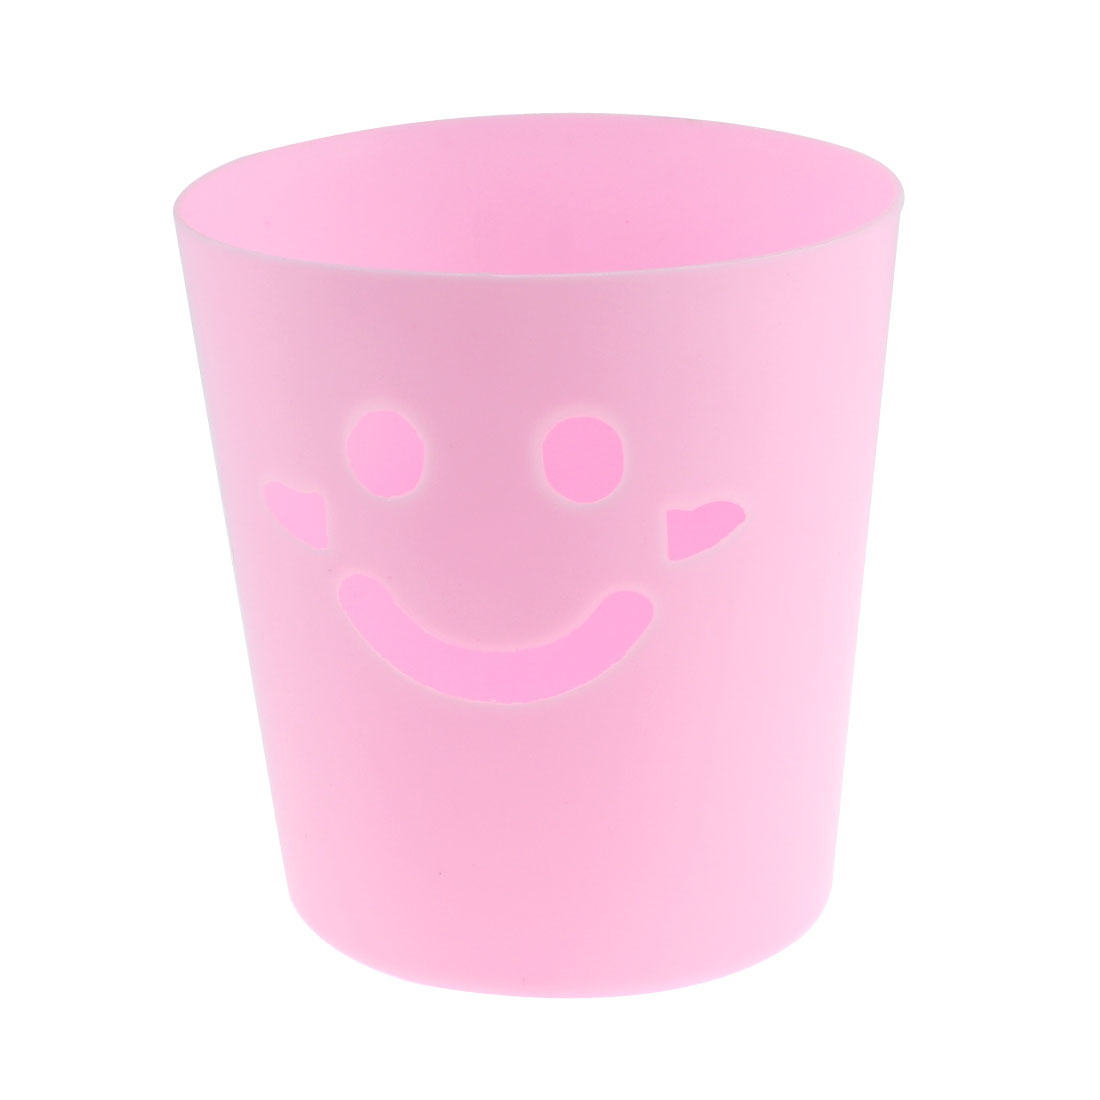 Plastic Smiling Face Design Mini Sundries Barrel Trash Can Storage Bucket Pink